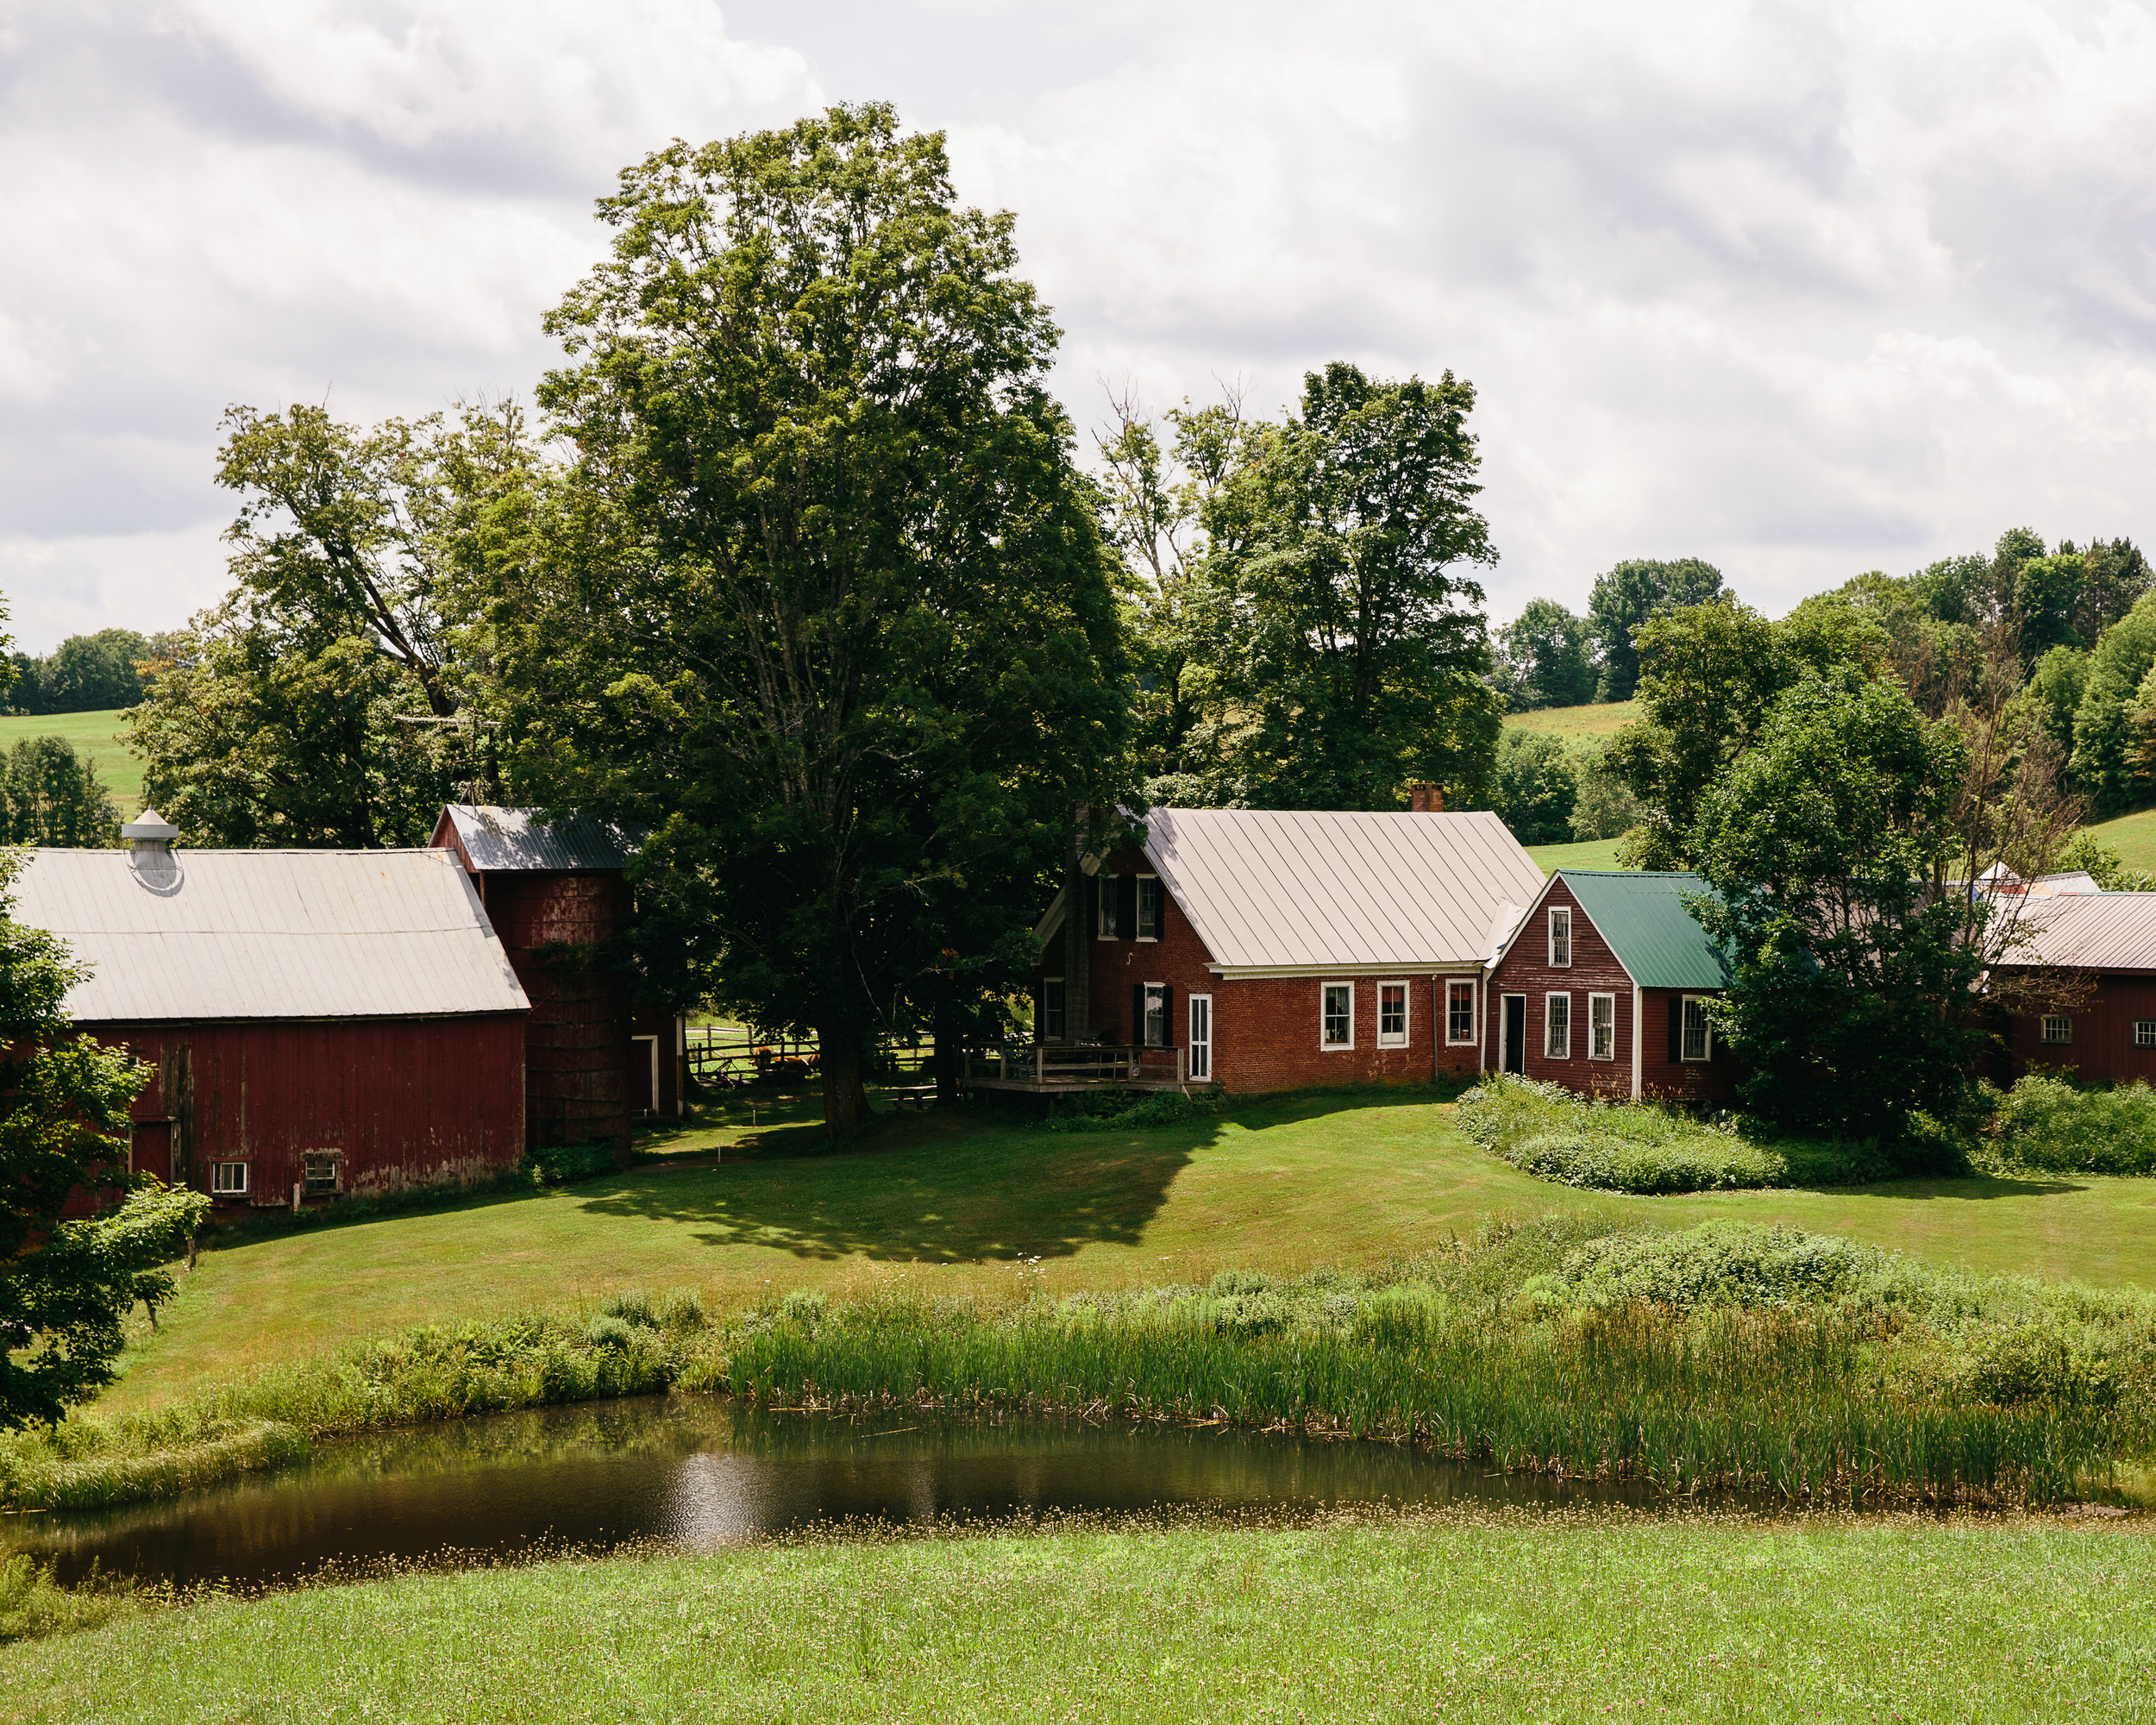 The most photographed farm in America, Jenne Farm in Woodstock, VT.